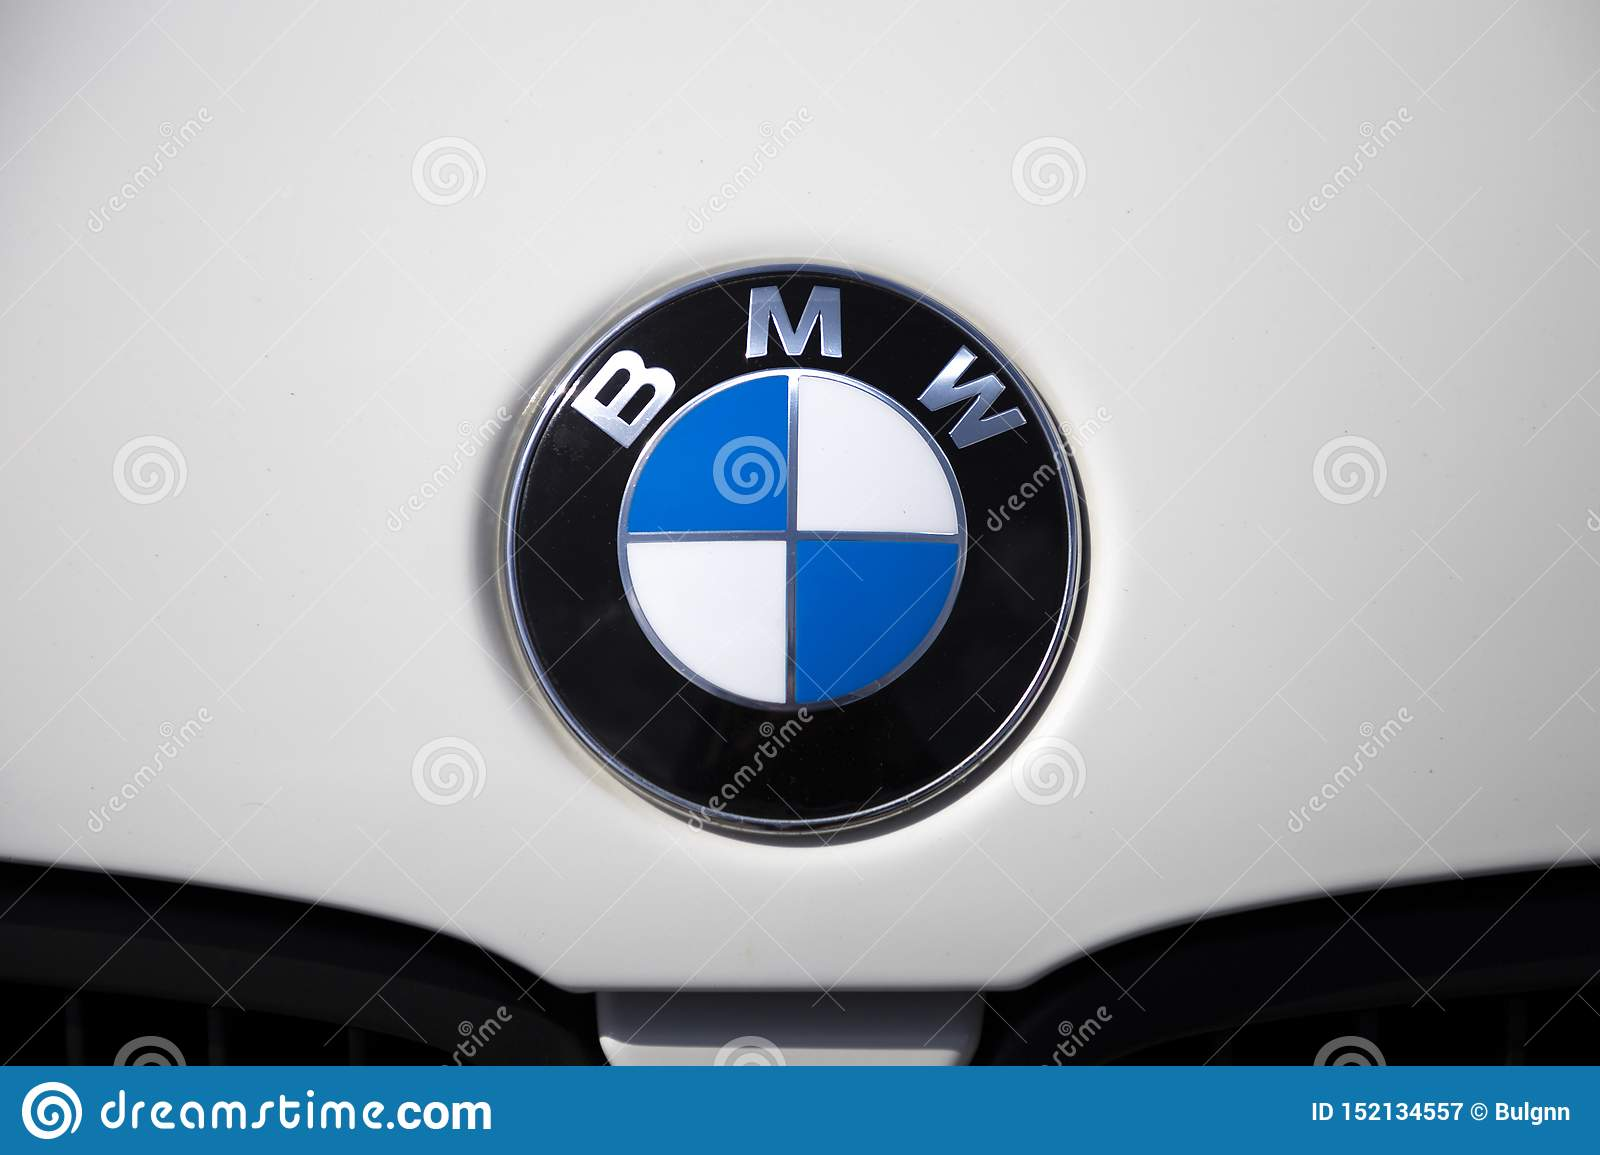 Closeup Of Bmw Brand Logo Chrome Car Emblem Sign On The White Car Hood Tuning Show Tomsk Russia 2019 06 15 Editorial Photography Image Of Automobile Closeup 152134557